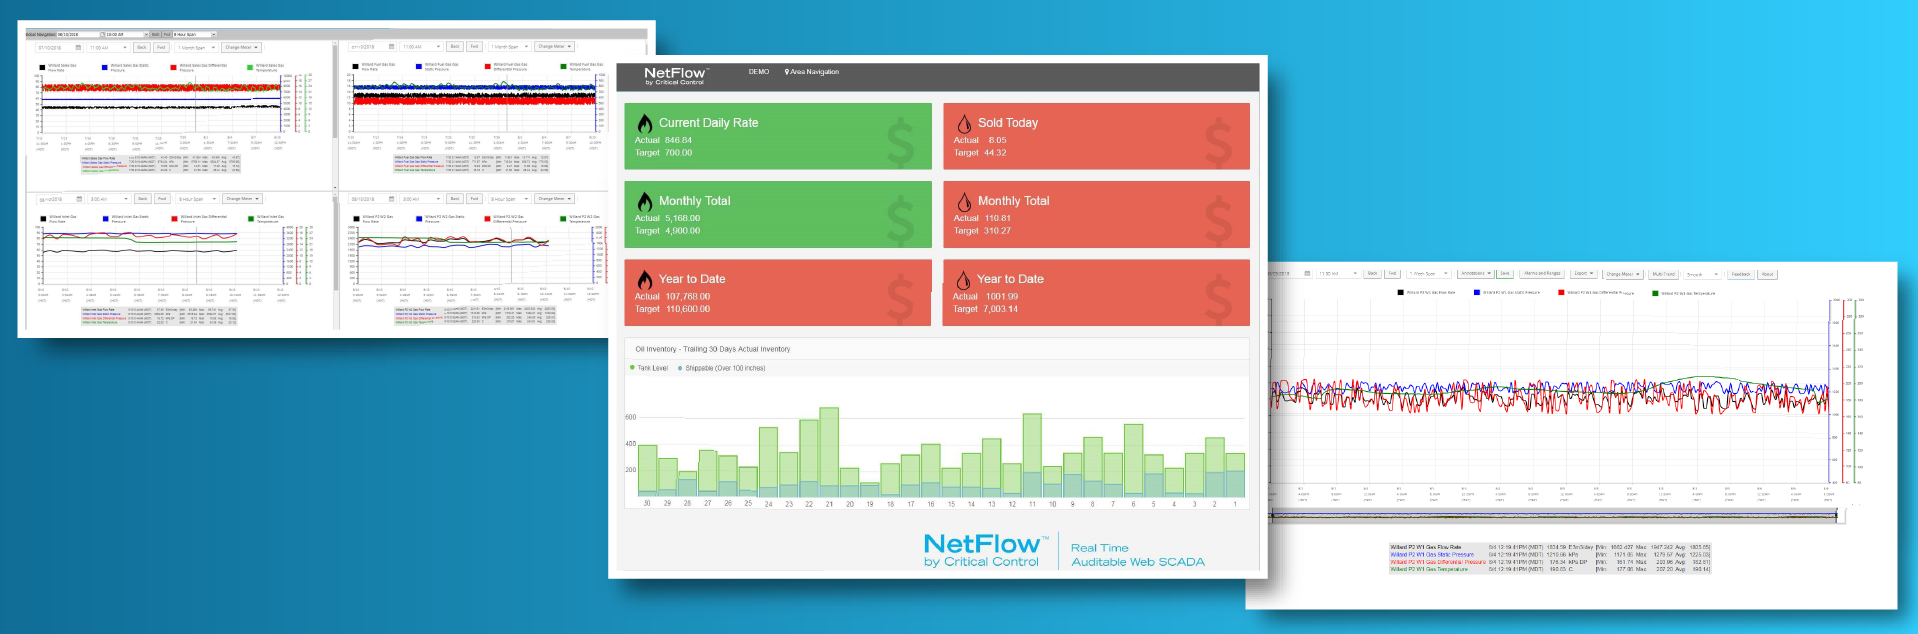 NetFlow Screenshot 1-01.png